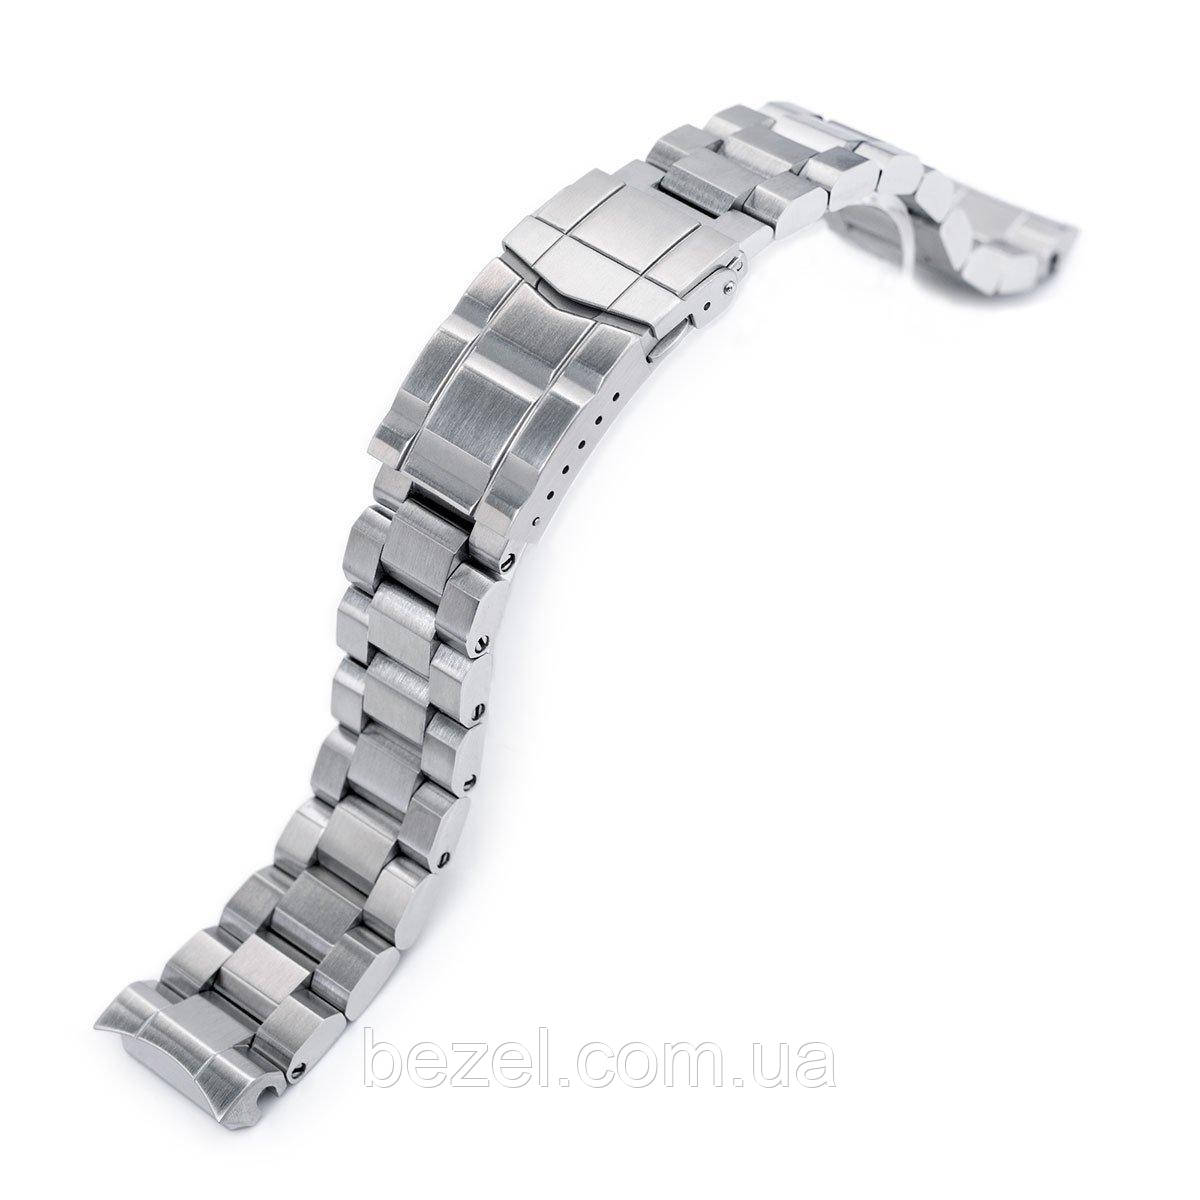 20mm Hexad Oyster 316L Stainless Steel Watch Band for Seiko MM300 Prospex Marinemaster SBDX001, Submariner Diver Clasp